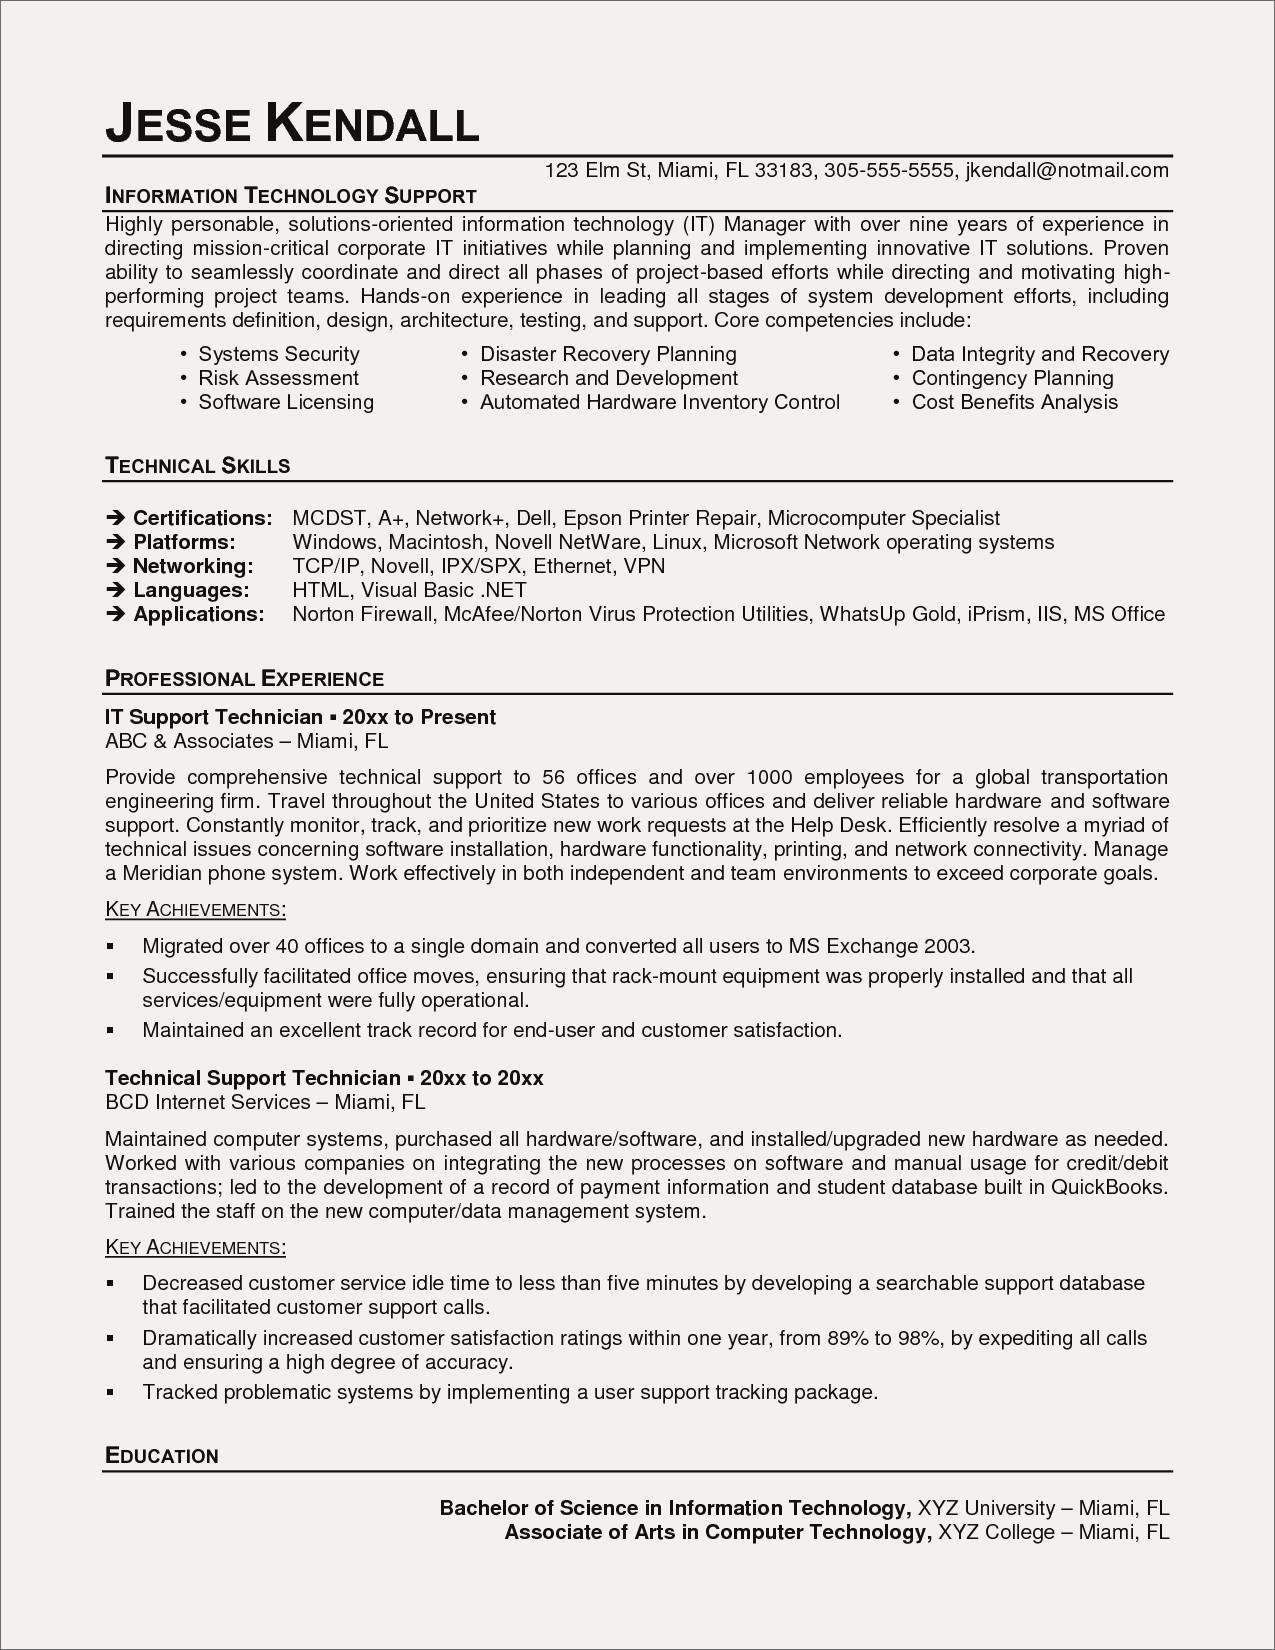 auto tech resume example-Technician Resume Examples New Auto Mechanic Resume American Resume Sample New Student Resume 0d 1-e